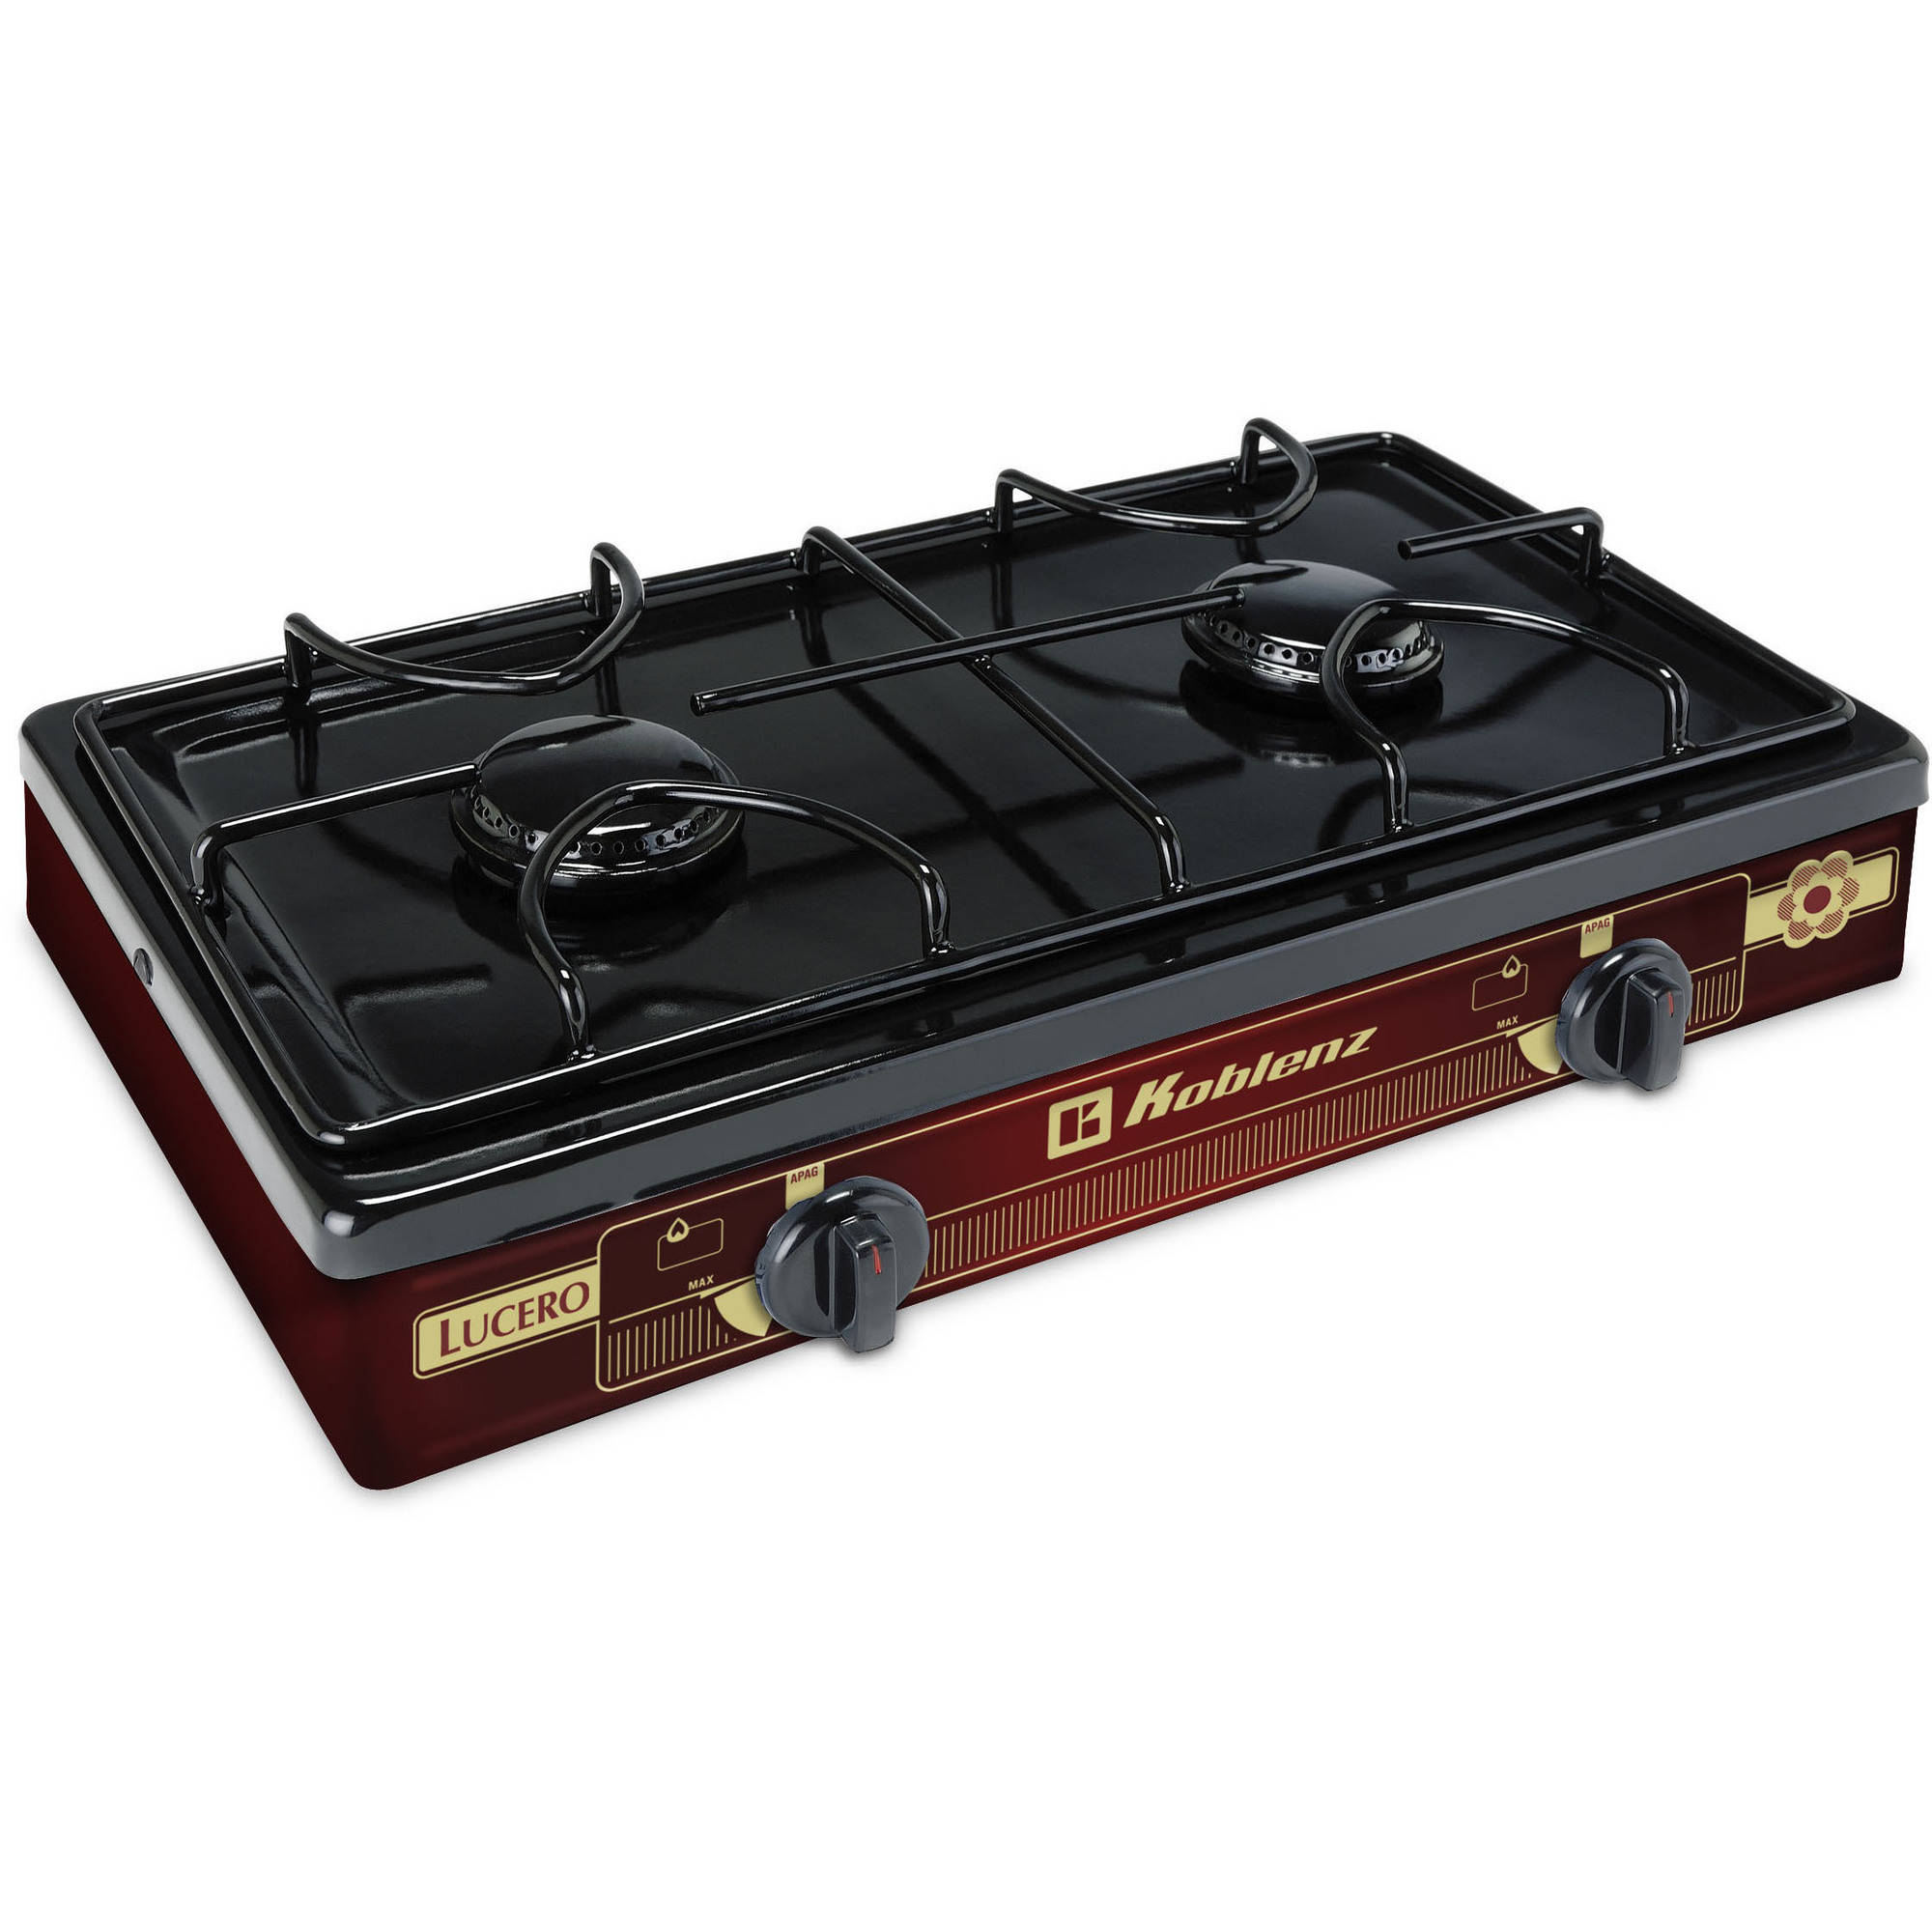 Kitchen Gas Stove Koblenz 2Burner Gas Stove  Walmart